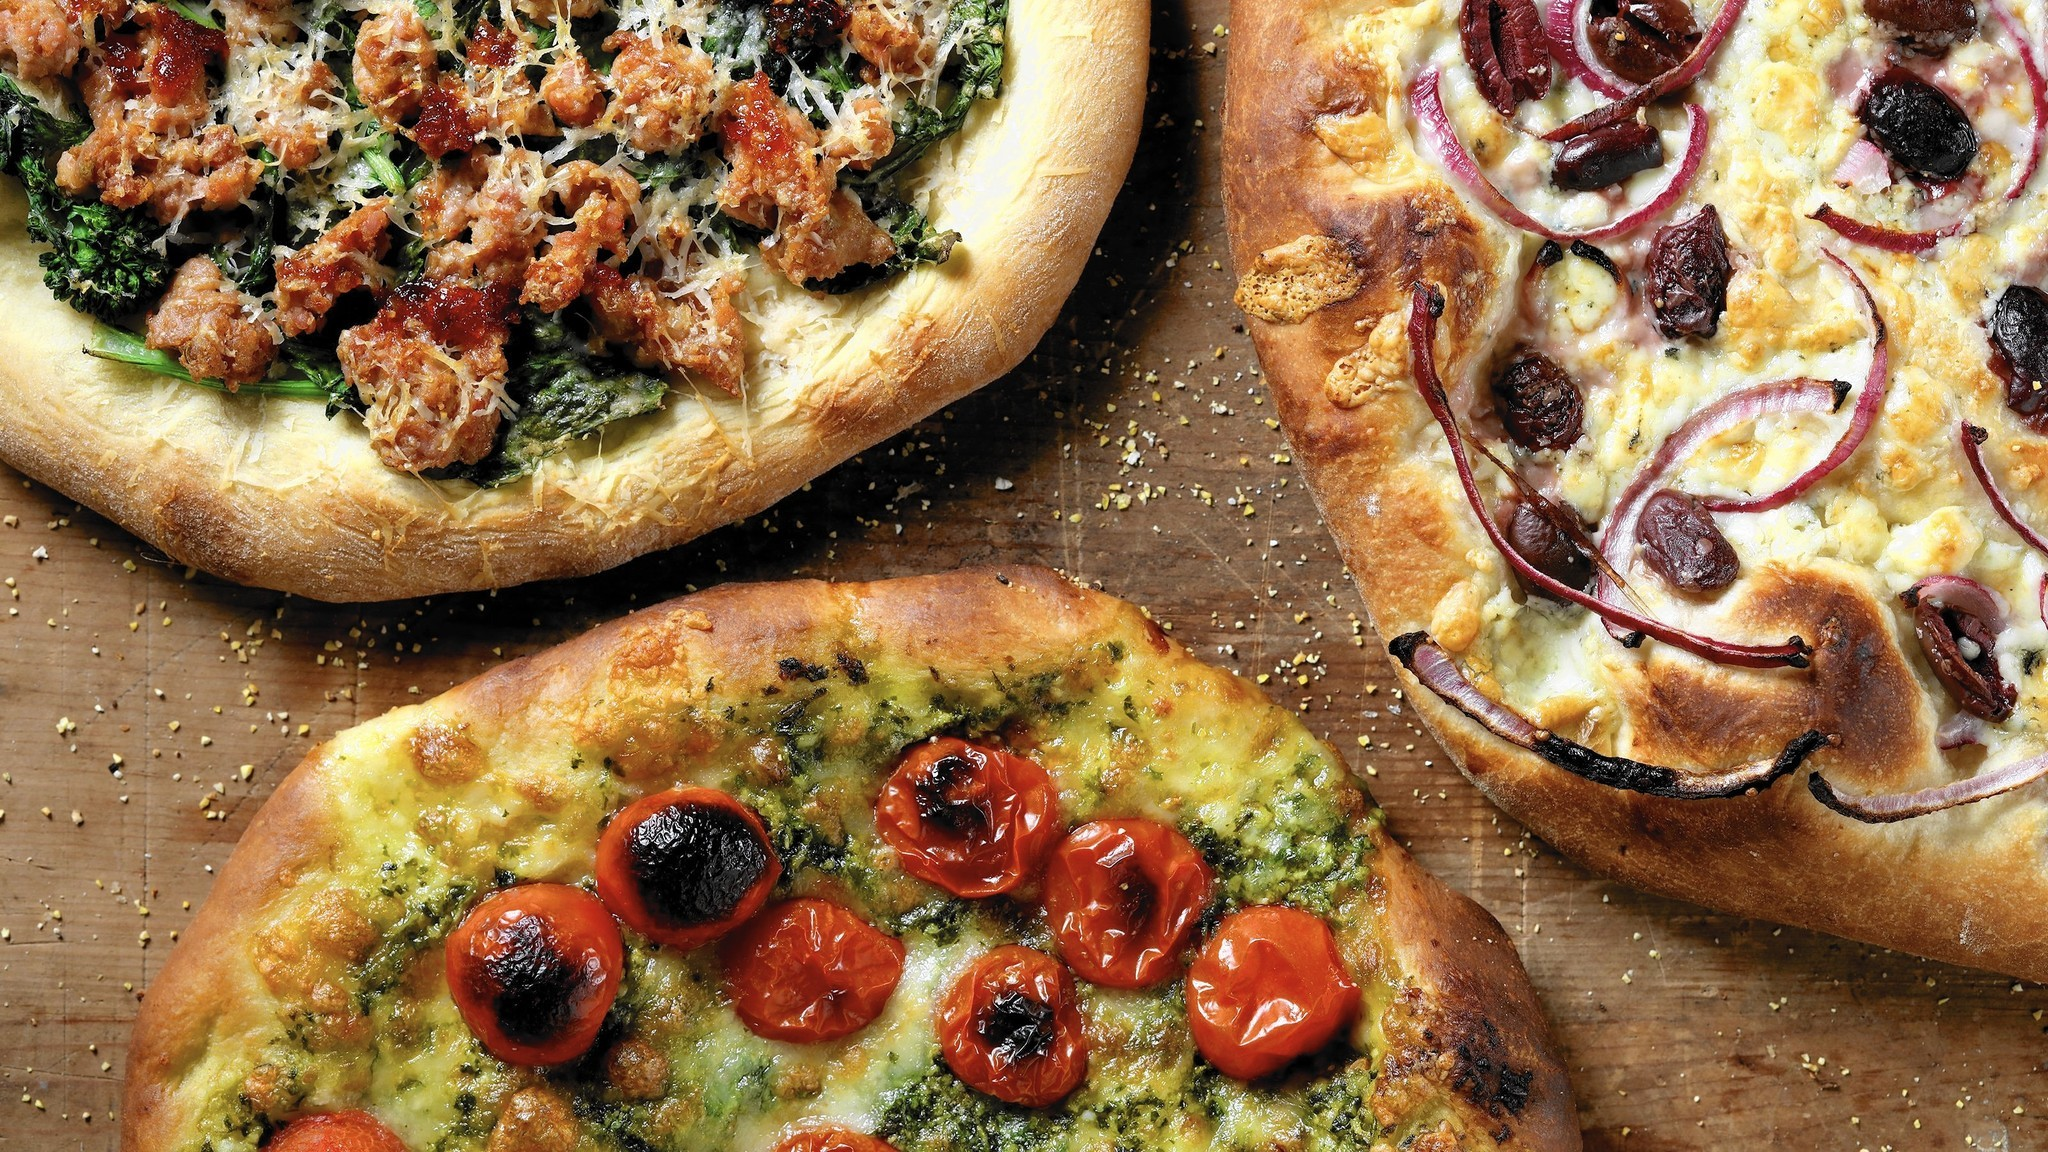 No-fuss toppings make pizza easy as pie